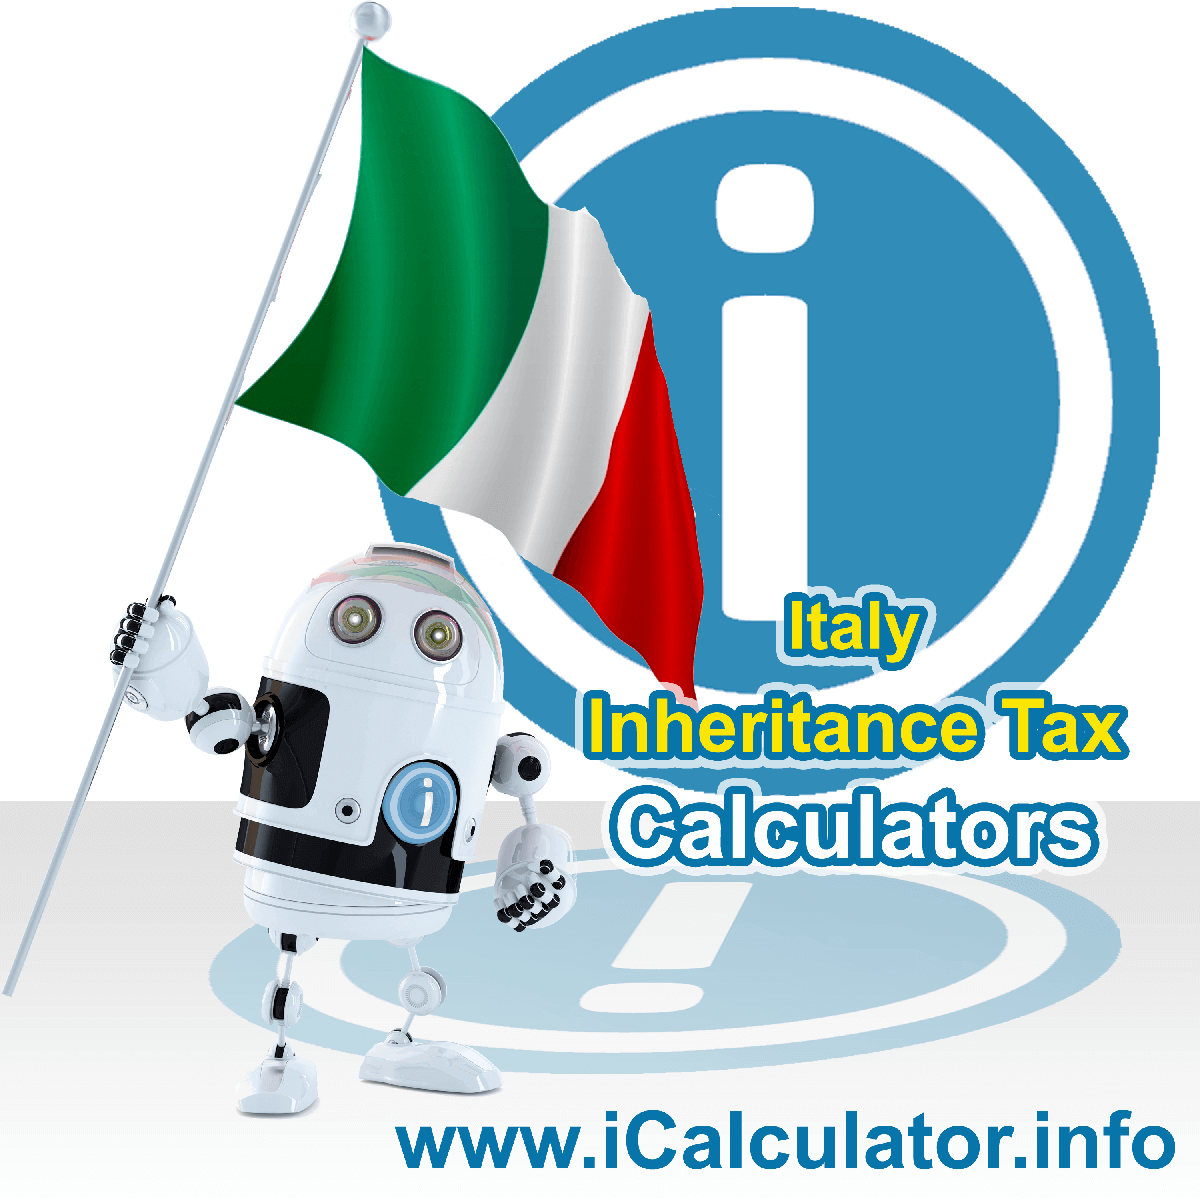 Italy Inheritance Tax Calculator. This image shows the Italy flag and information relating to the inheritance tax rate formula used for calculating Inheritance Tax in Italy using the Italy Inheritance Tax Calculator in 2020